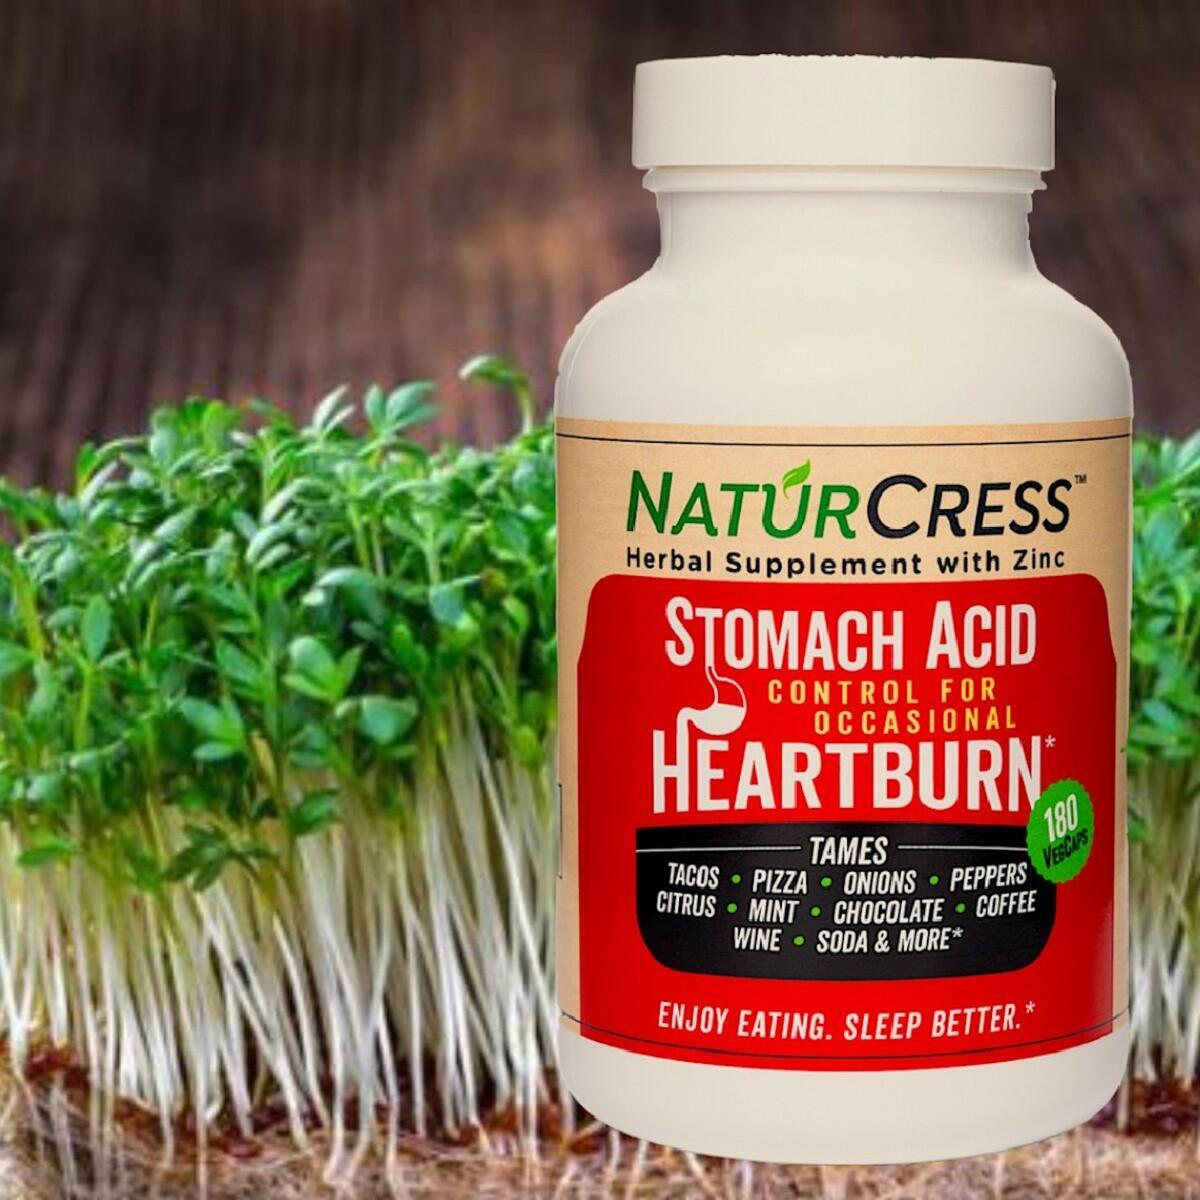 NaturCress Herbal Heartburn Relief | Works 2-Ways | Fast Natural Control | Tame Food Triggers | Highly Rated | 180 VegCaps